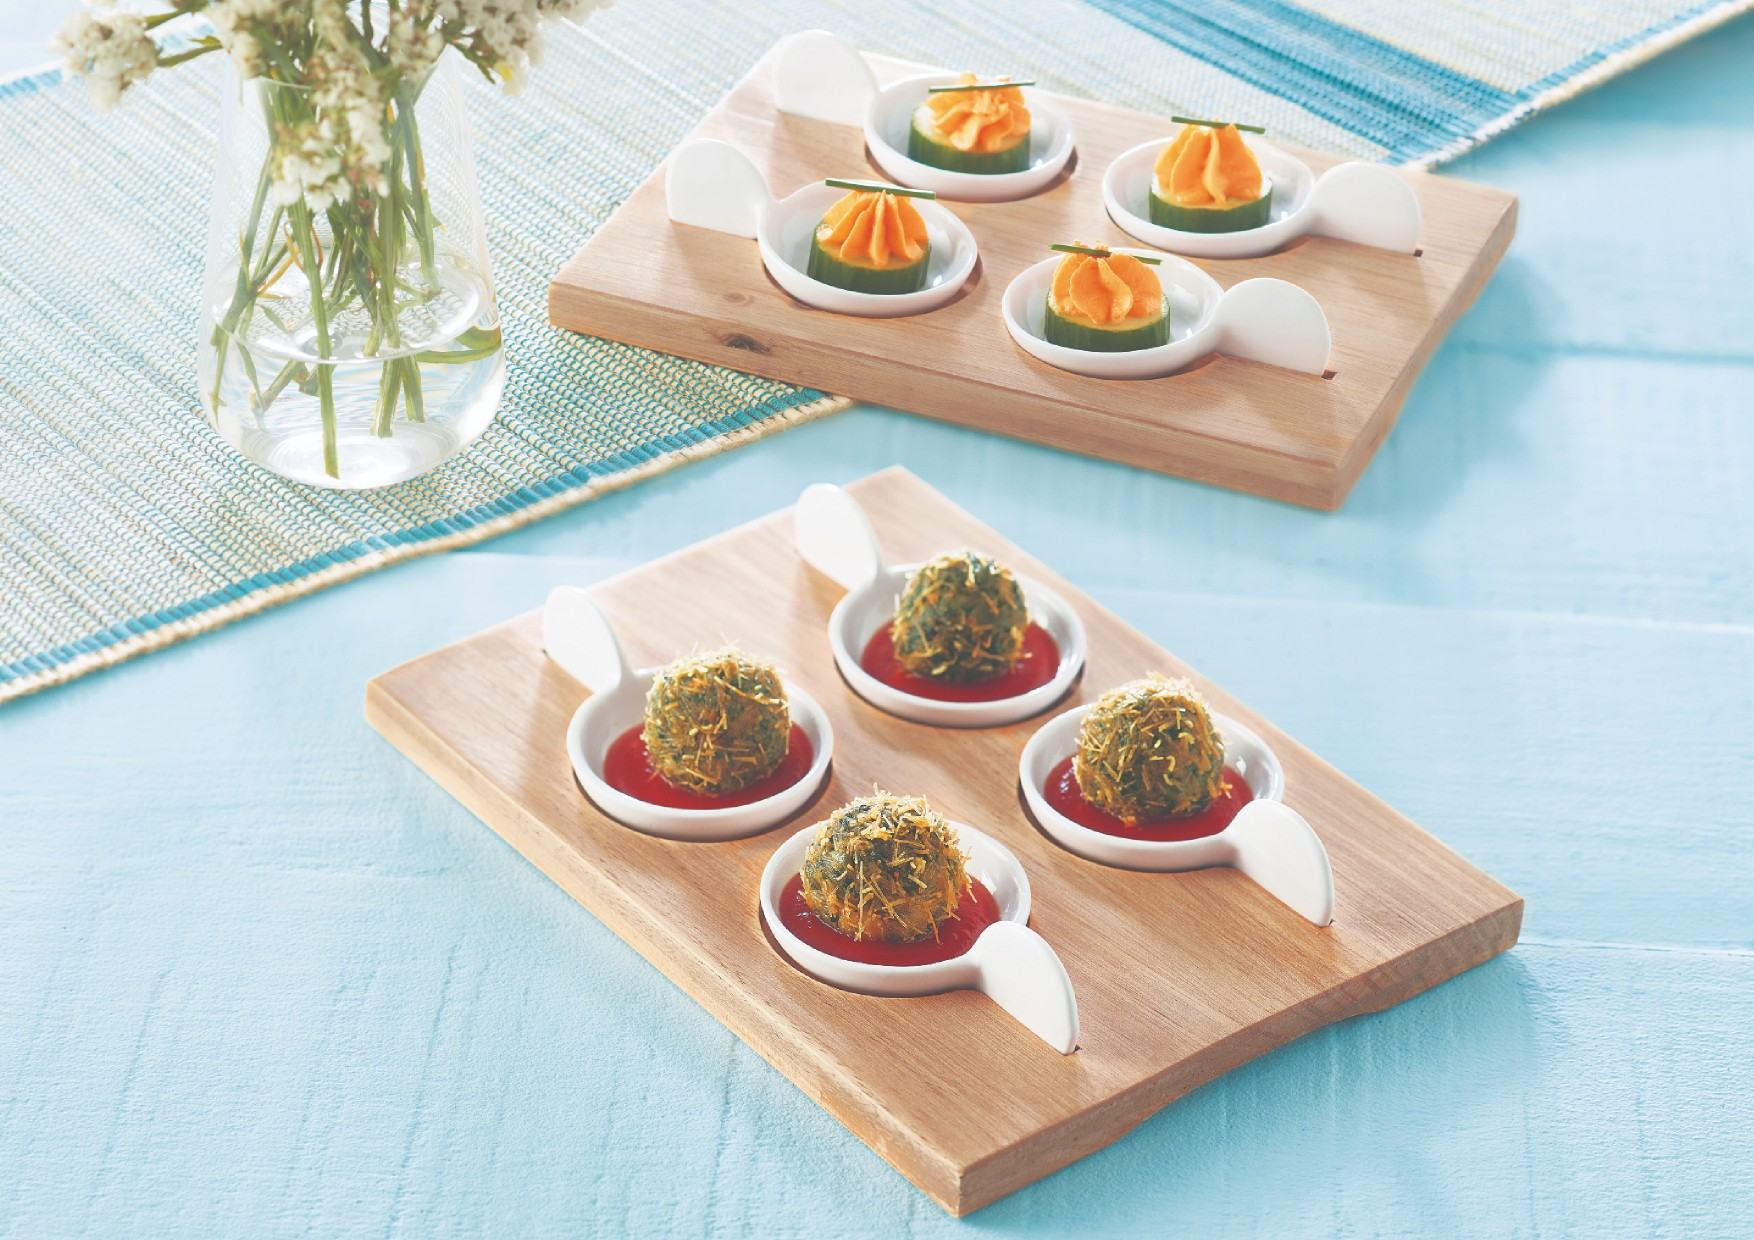 Songbird Hors D'Oeuvre Platter Platters in Natural Wood And White Colour by Songbird